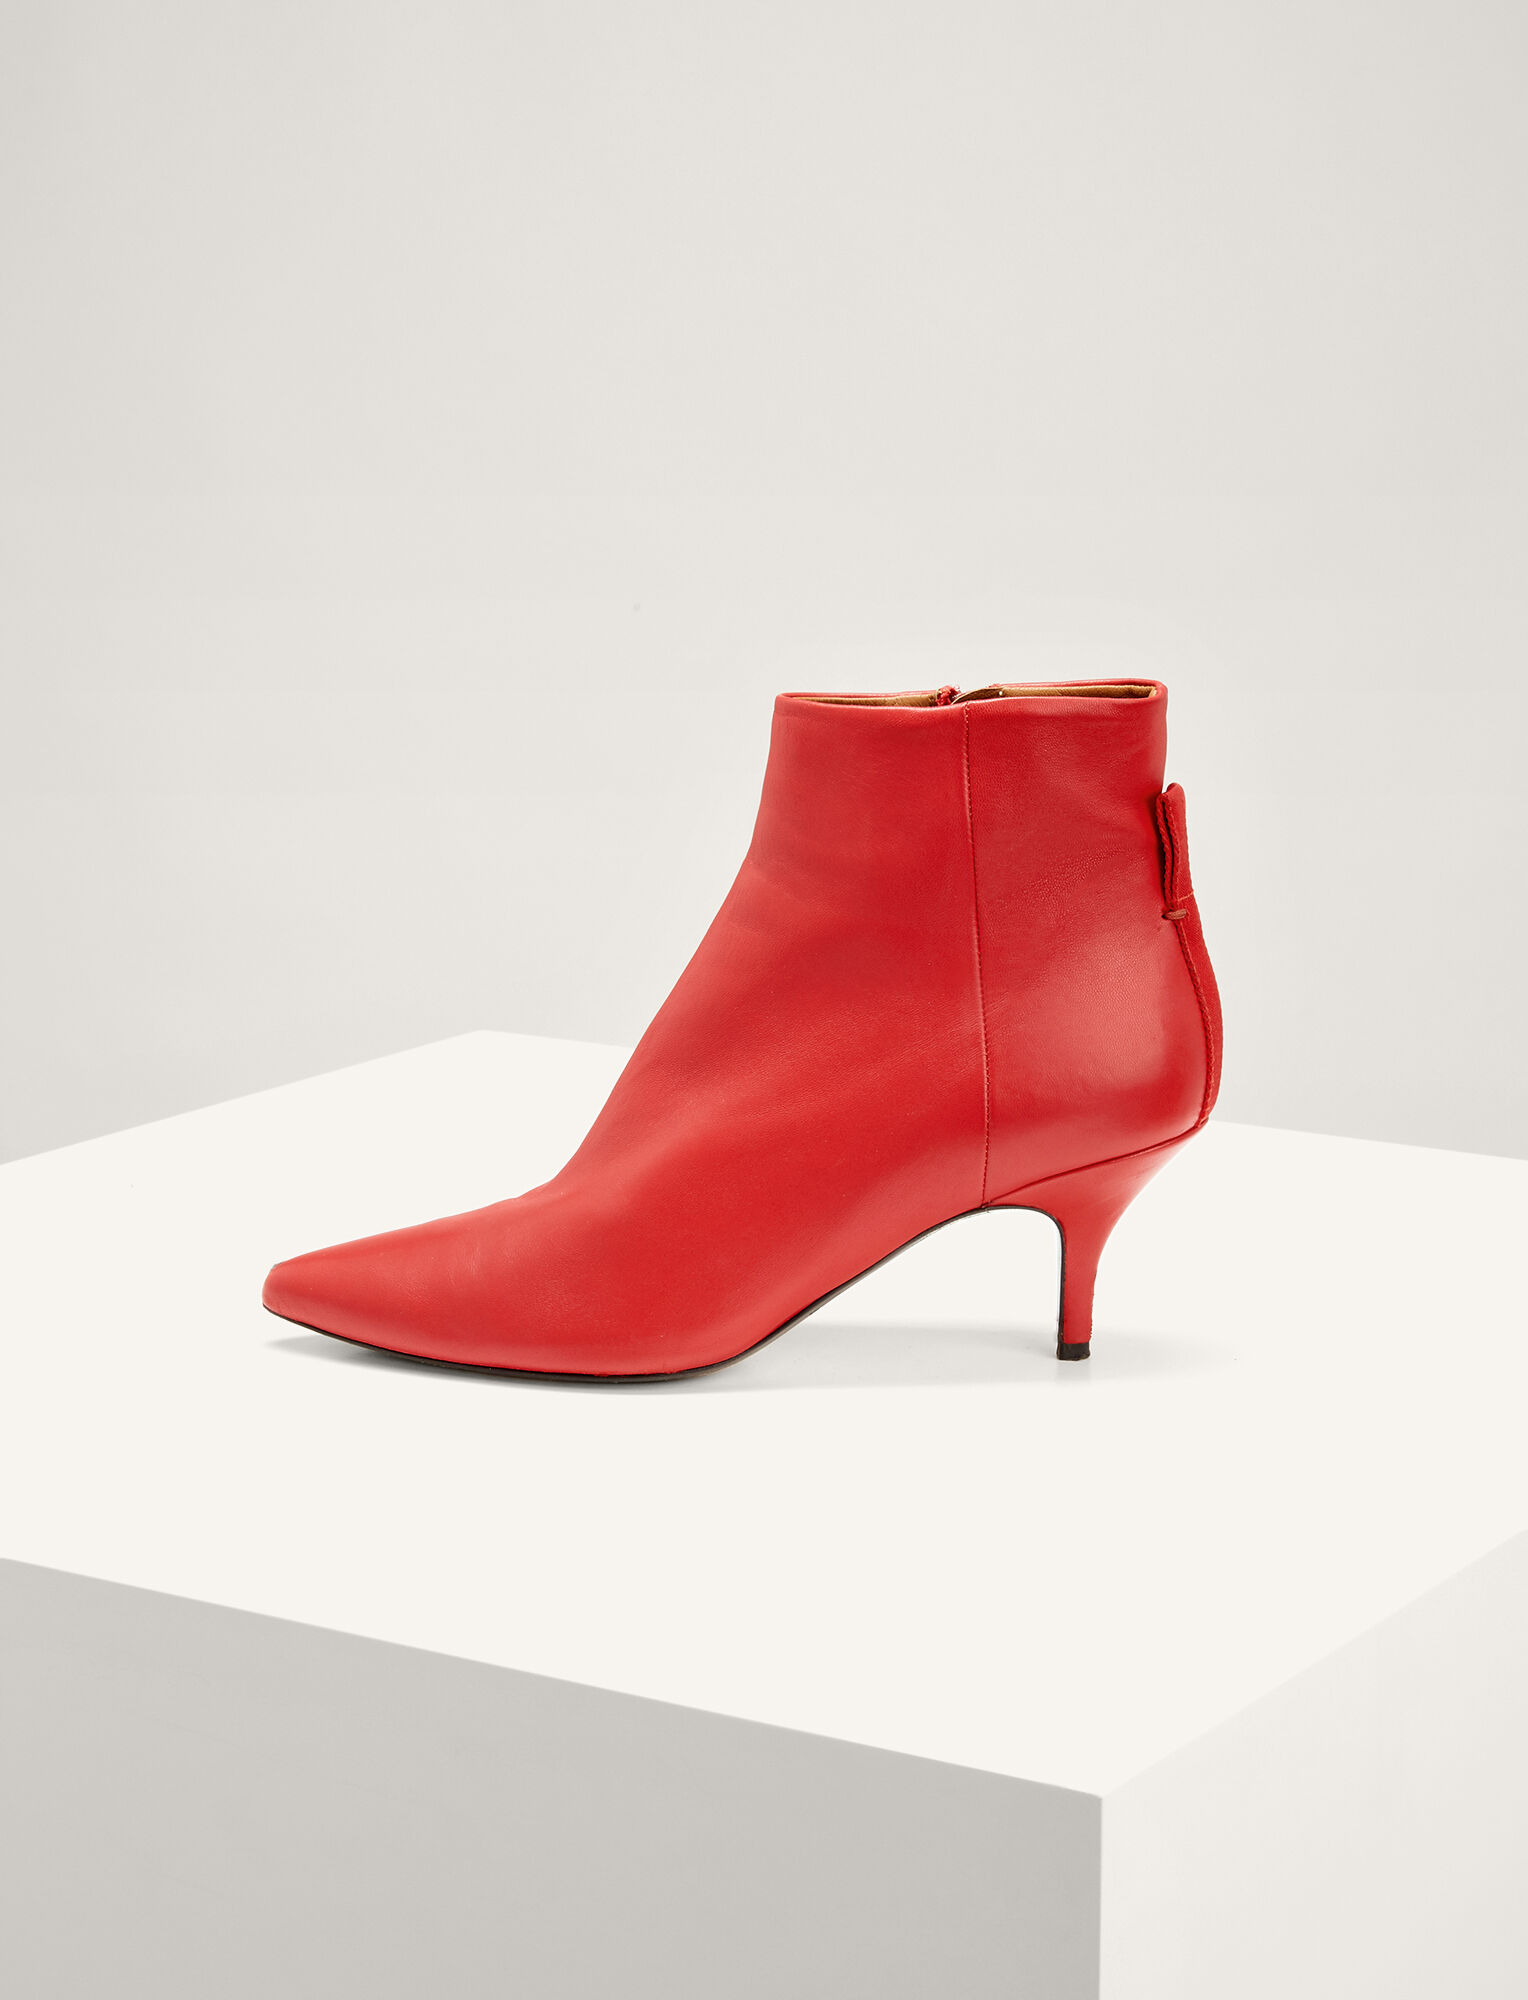 Joseph, The Sioux Pointed Boots, in RED